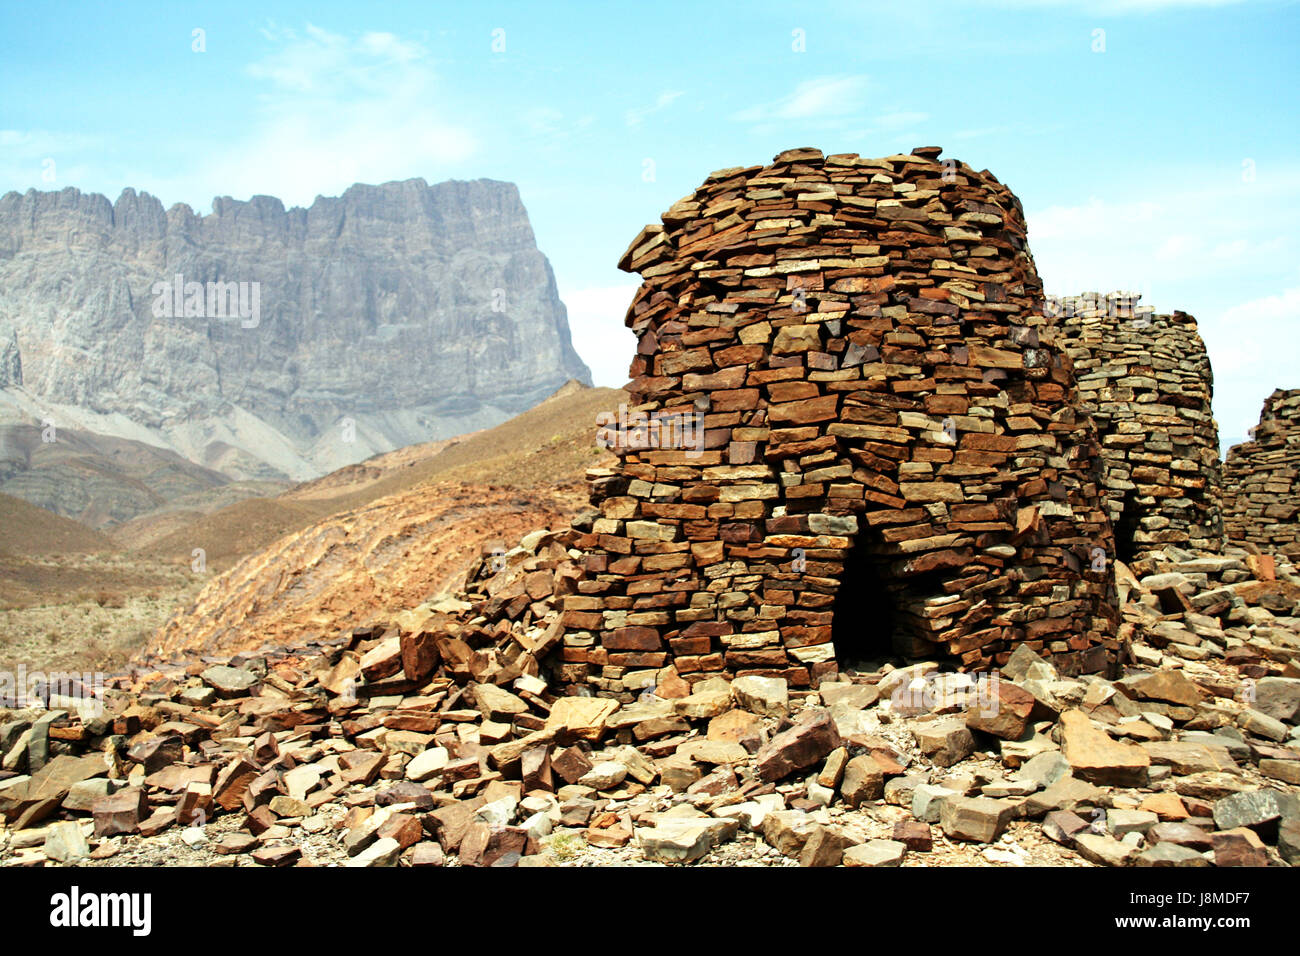 Beehive tombs, Al Ayn, Oman, with Jebel Misht in background - Stock Image